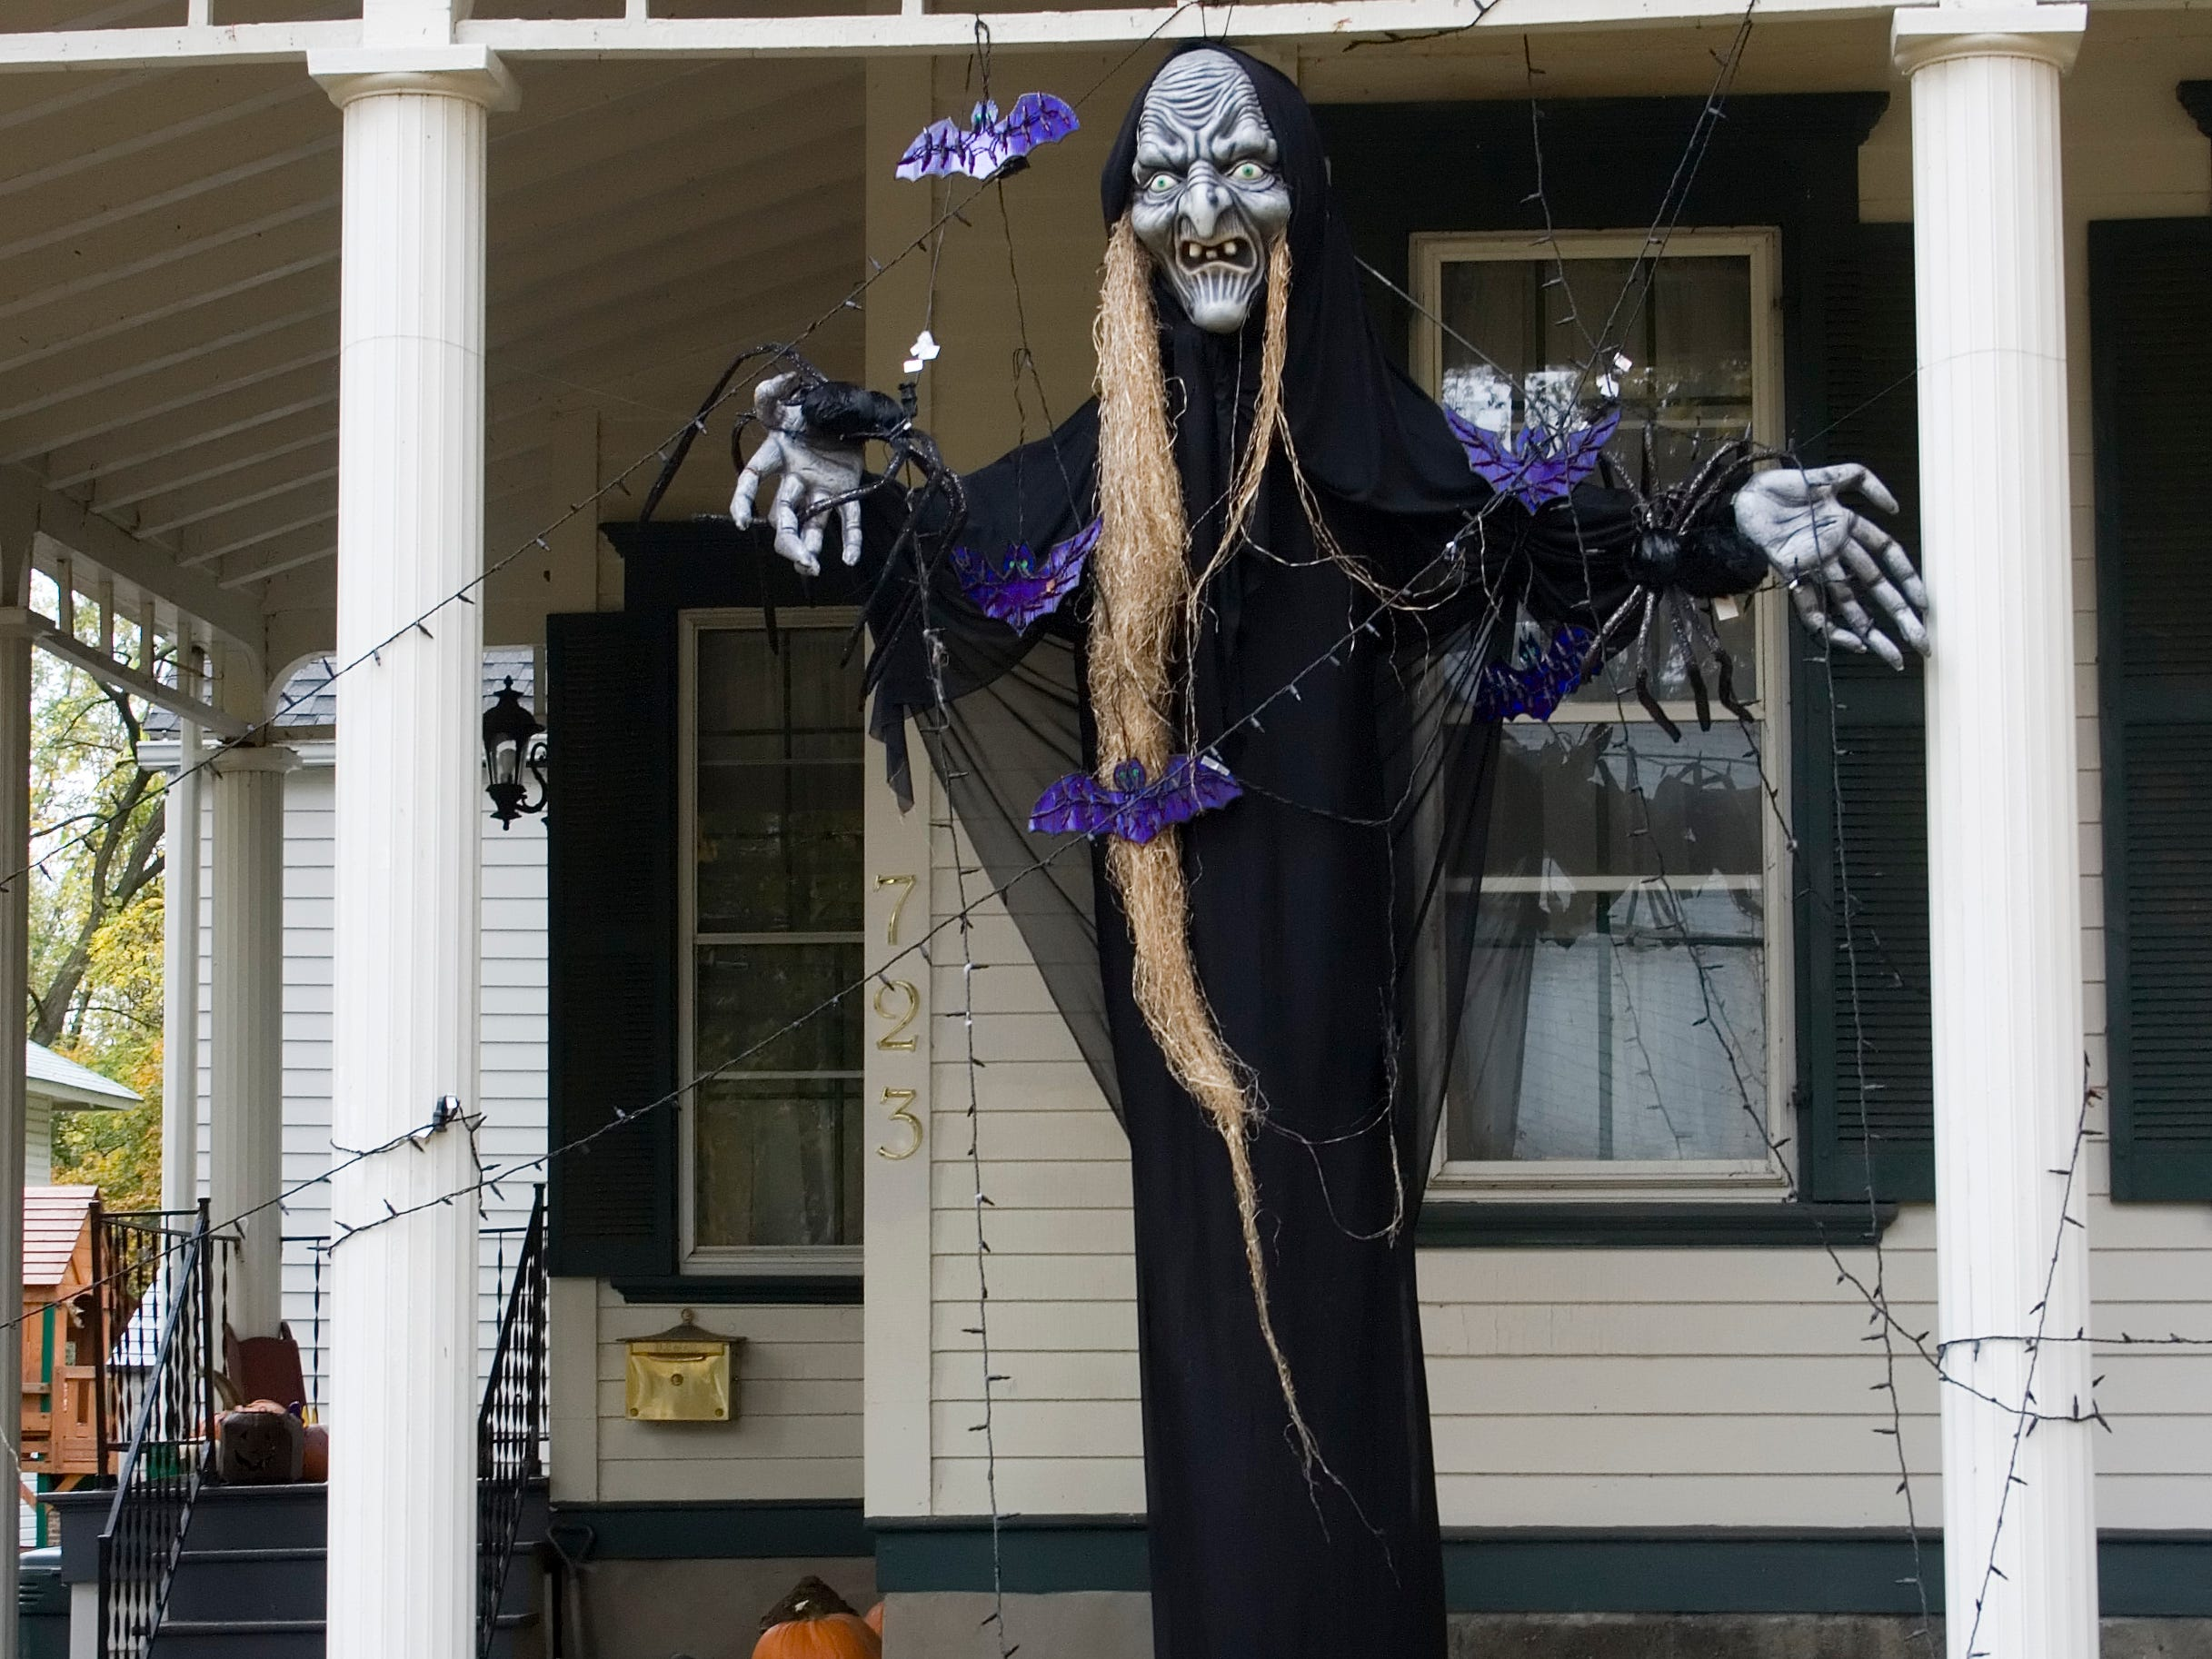 2008: An Elmira area house decorated for Halloween.